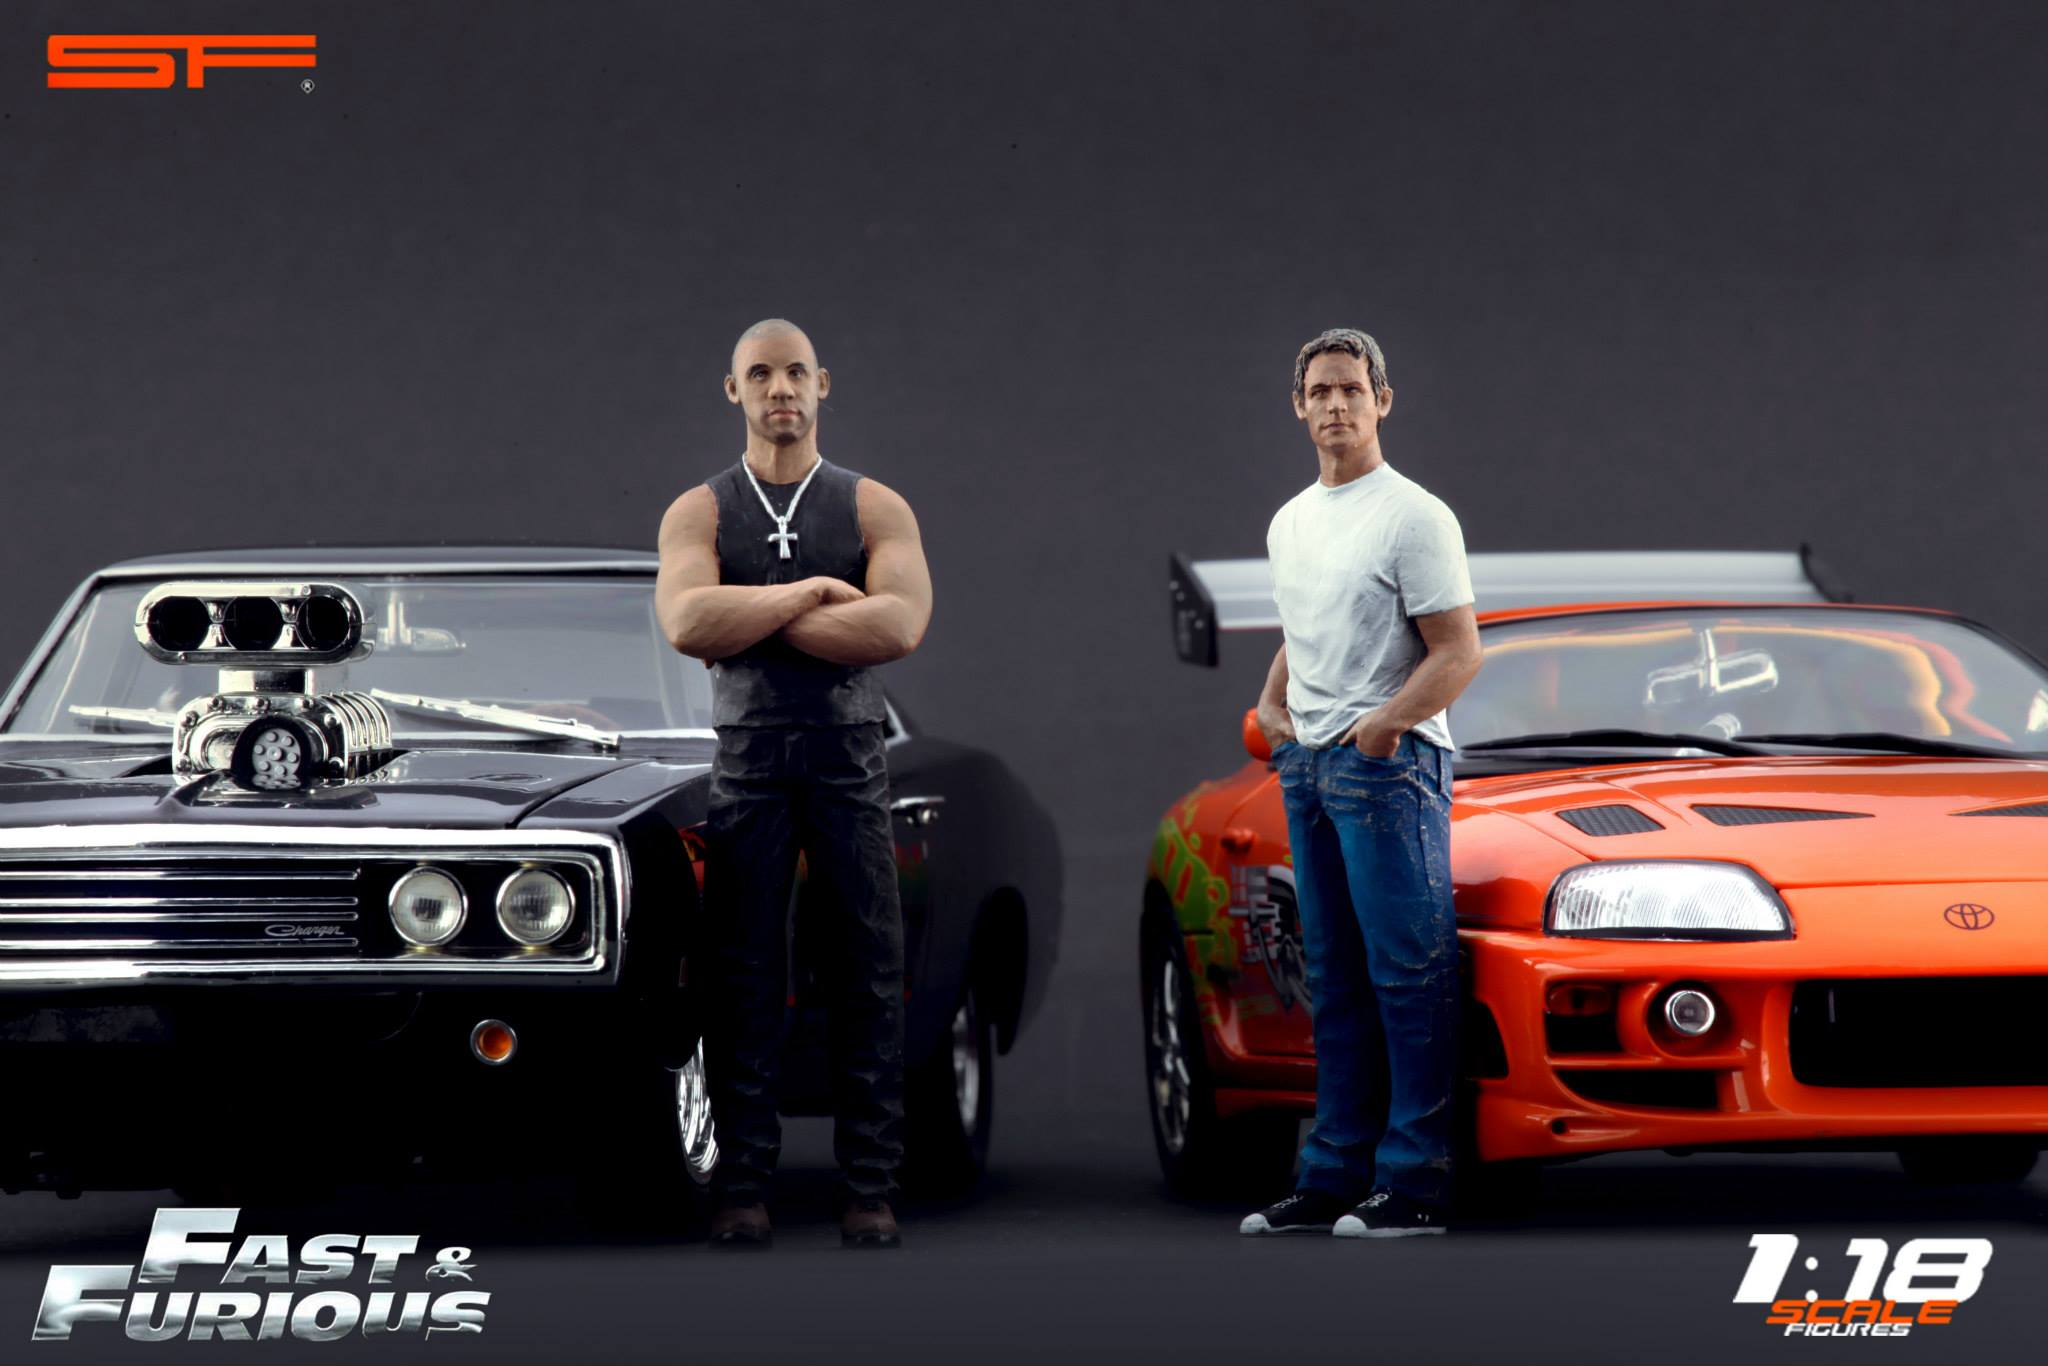 scale figures releases fast and furious famed paul walker